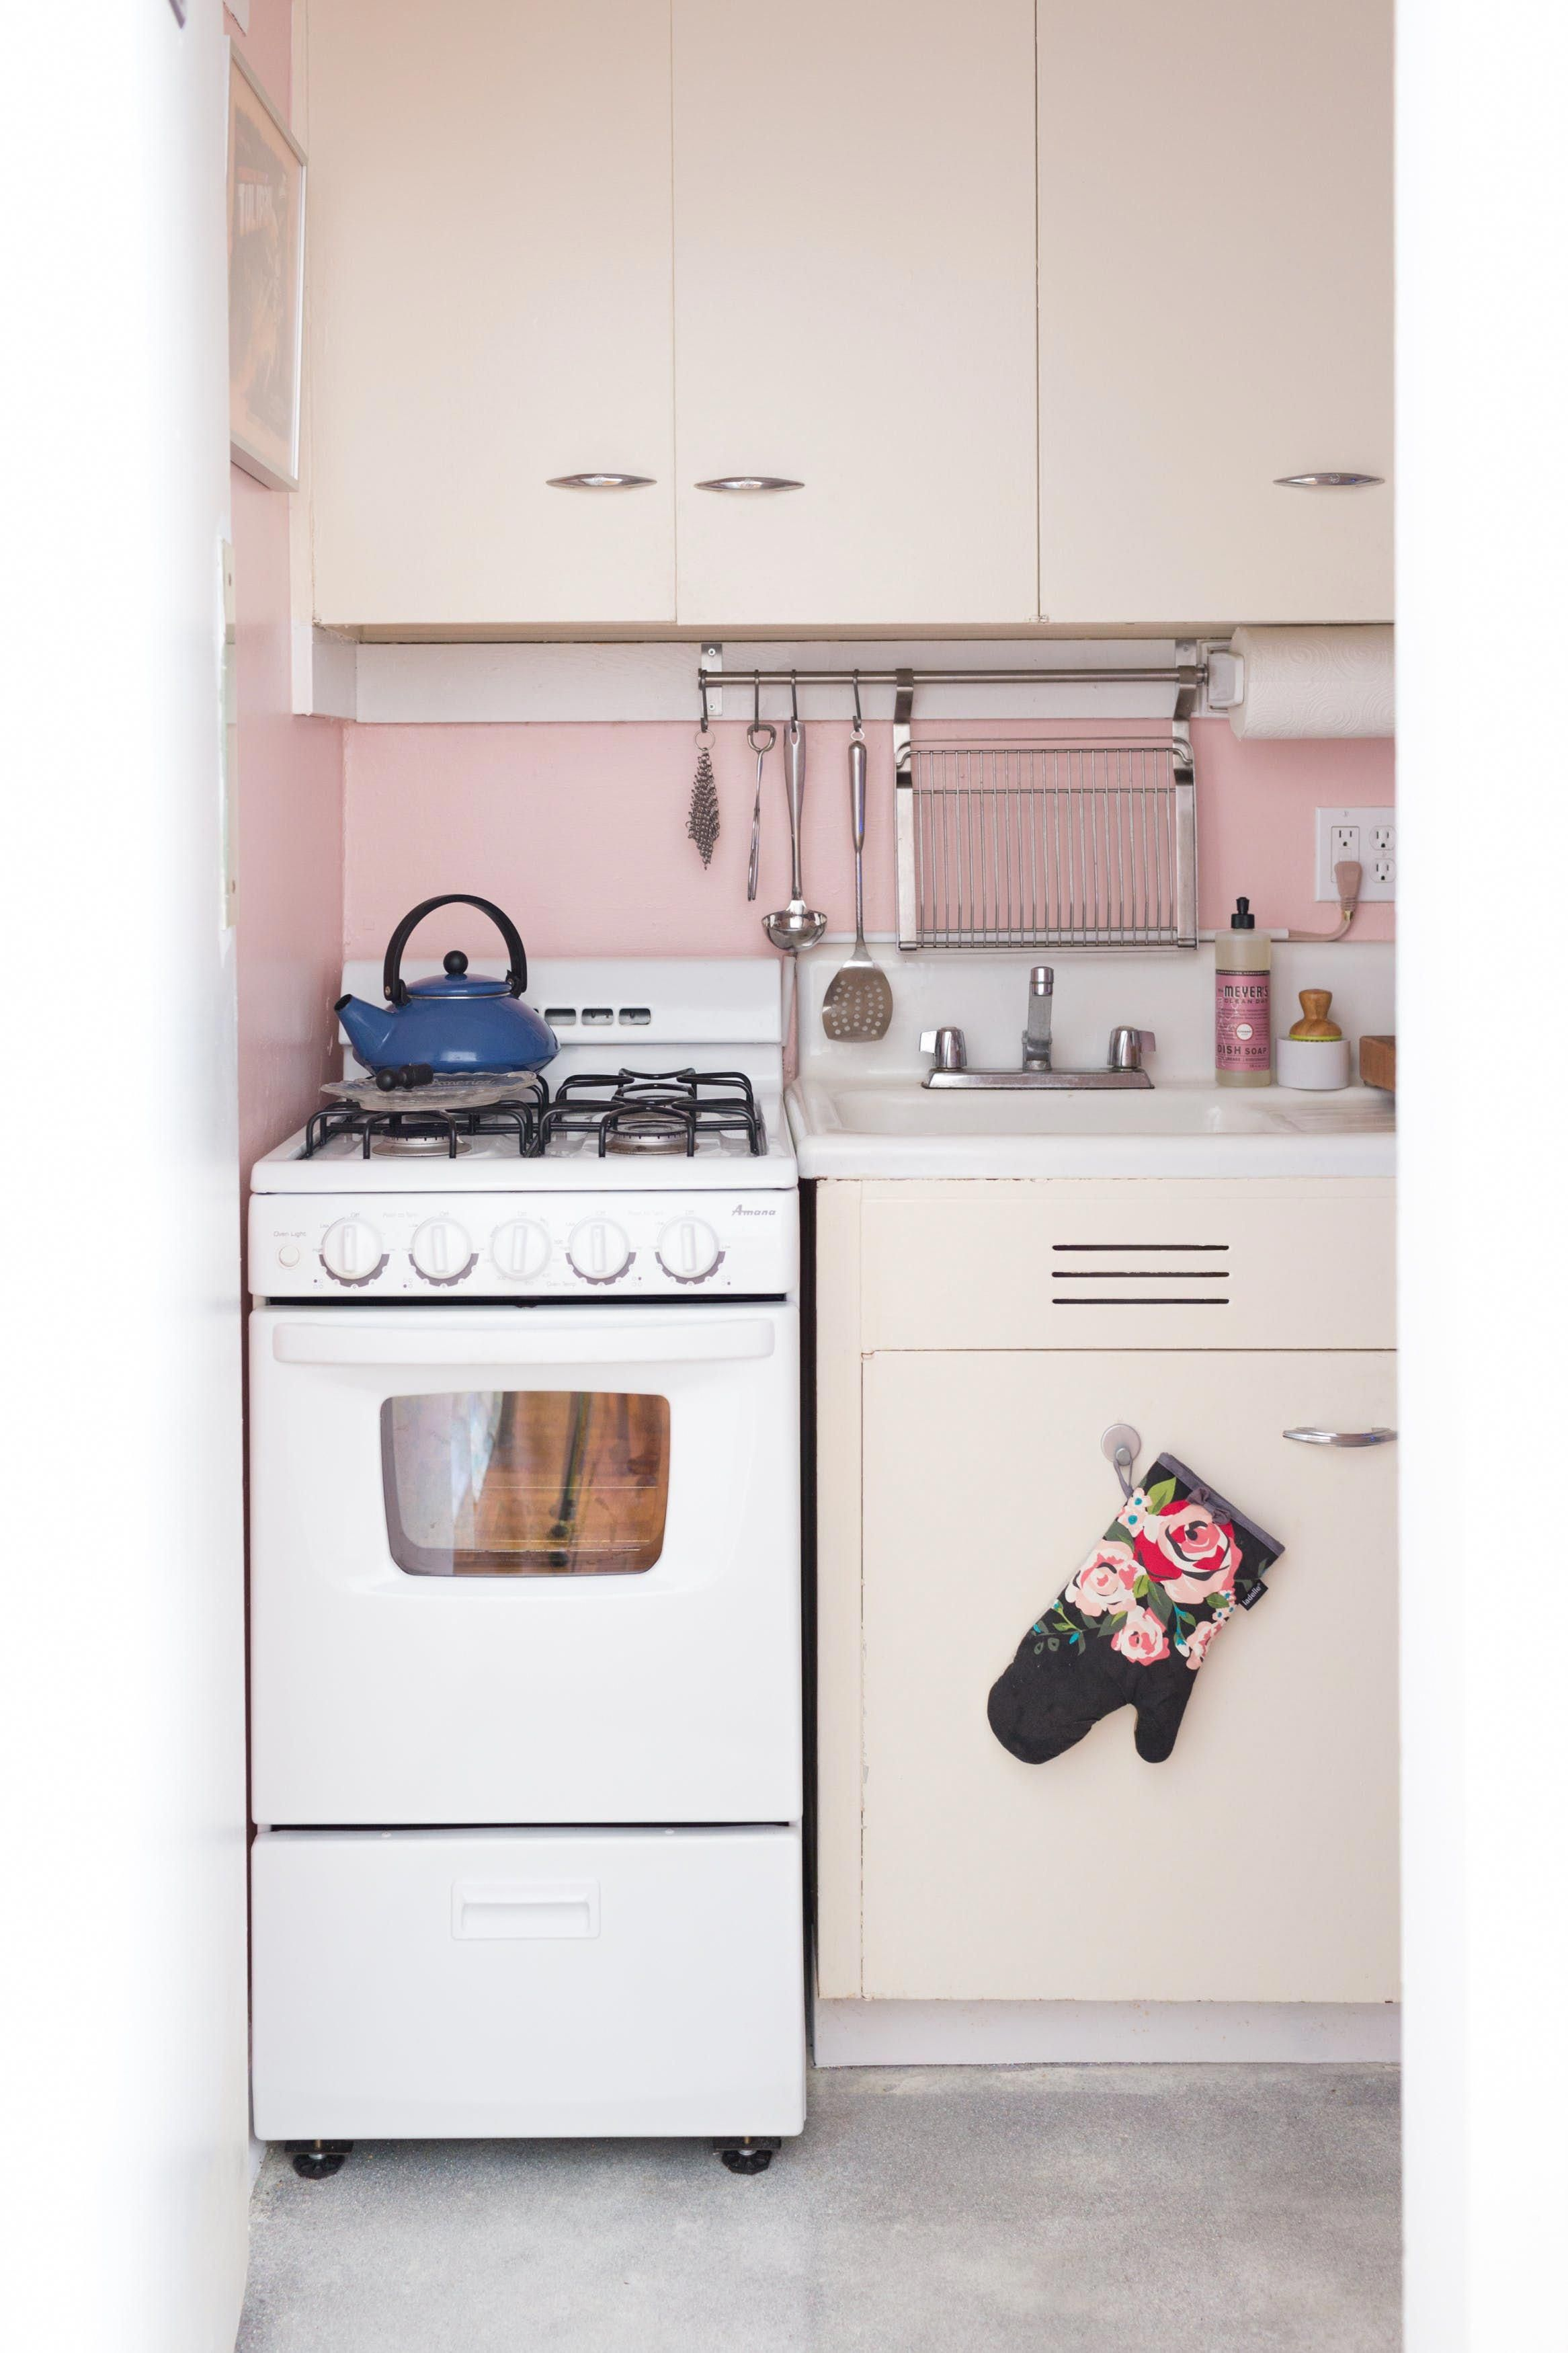 The Kitchen With A Color Scheme That Grace Notes Is A Nearly Exact